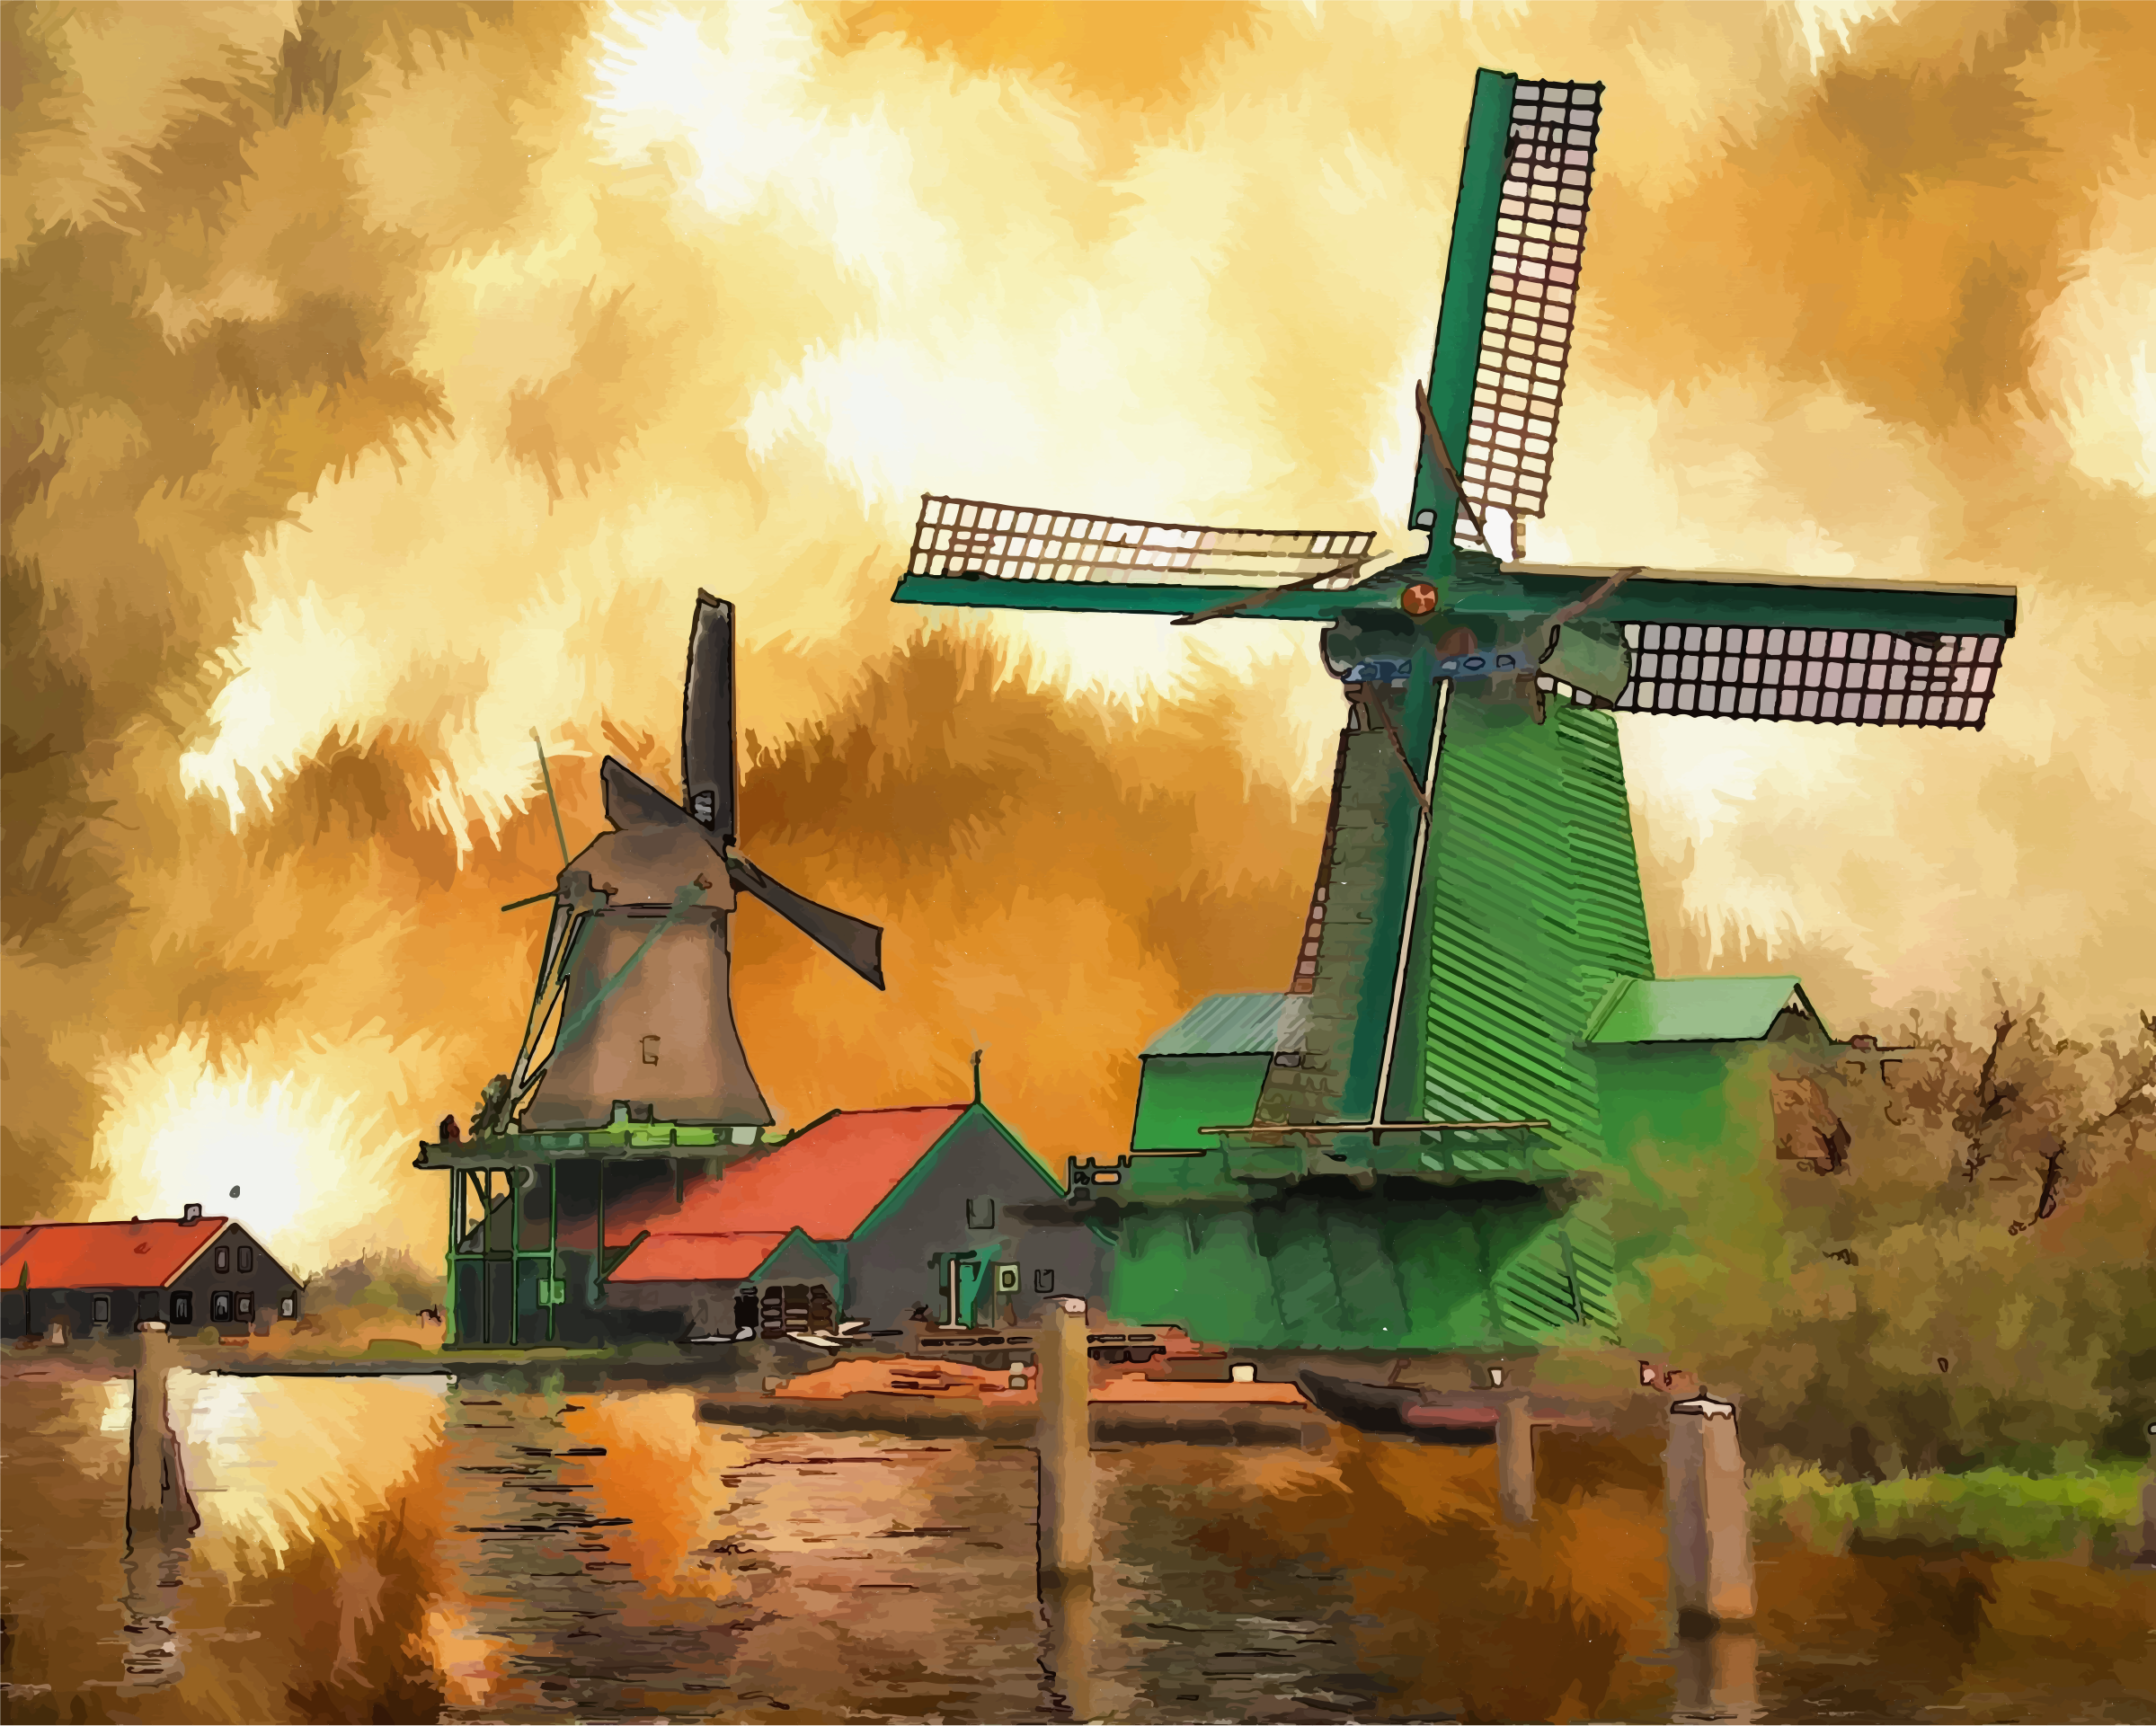 Surreal Windmills Landscape by GDJ